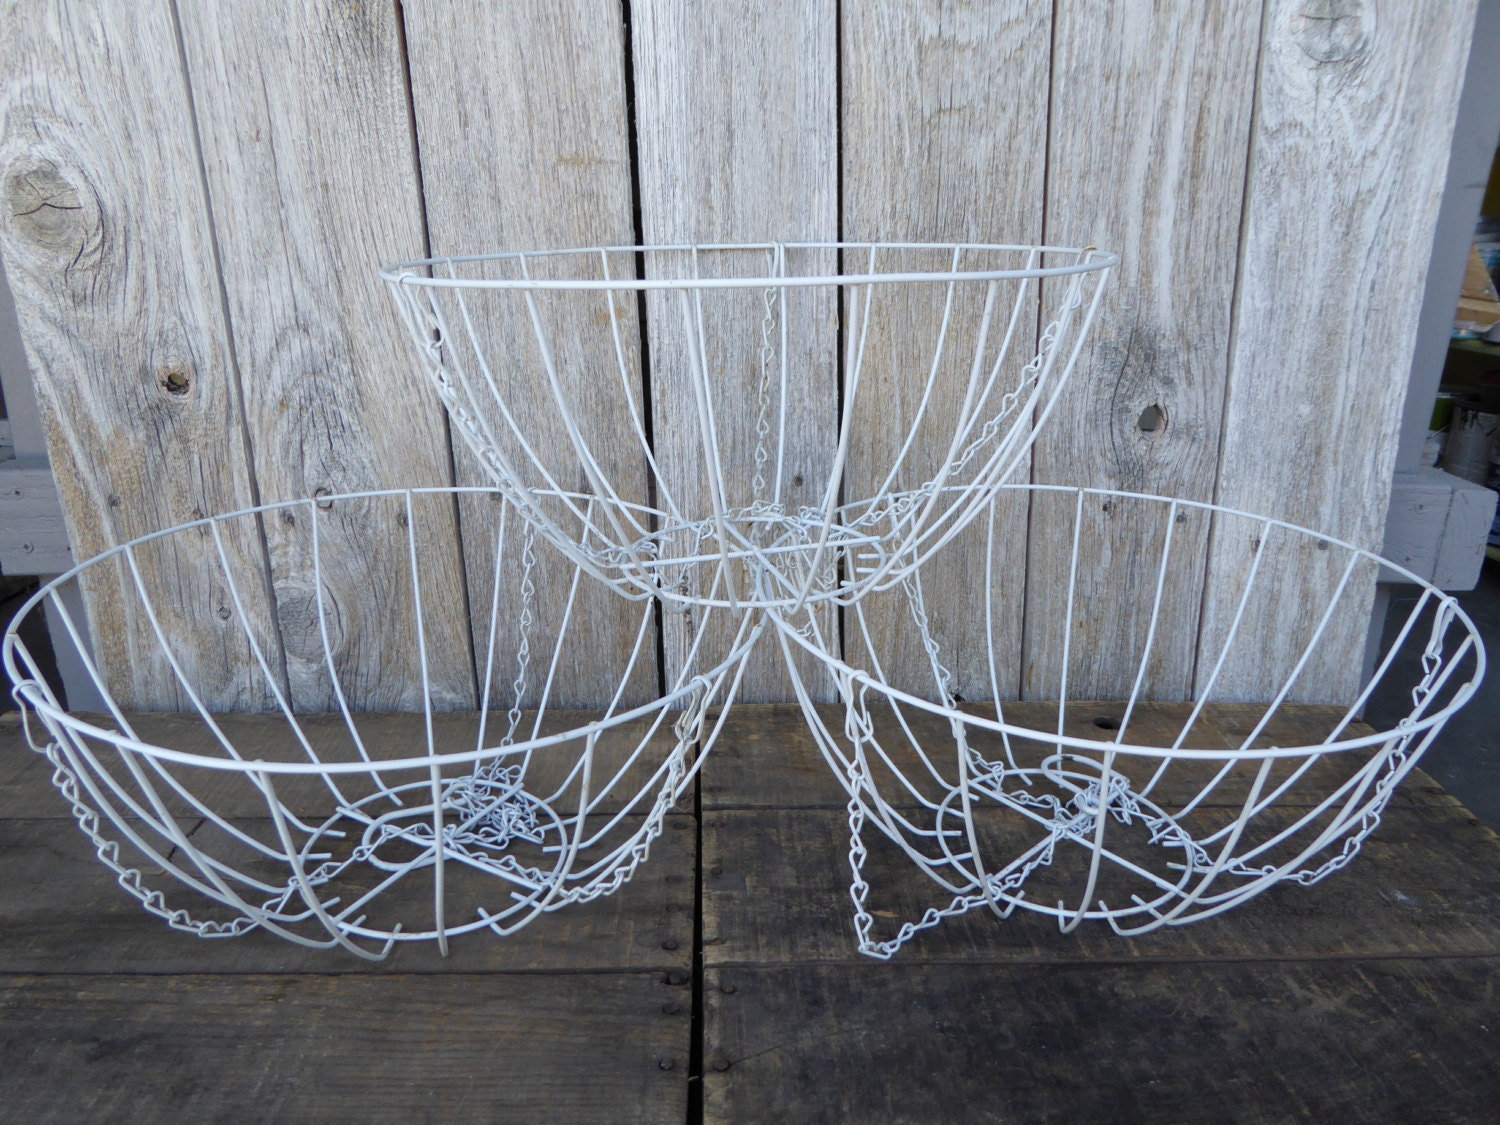 Metal Flower Hanging Baskets : Large white metal wire hanging basket flower fruit